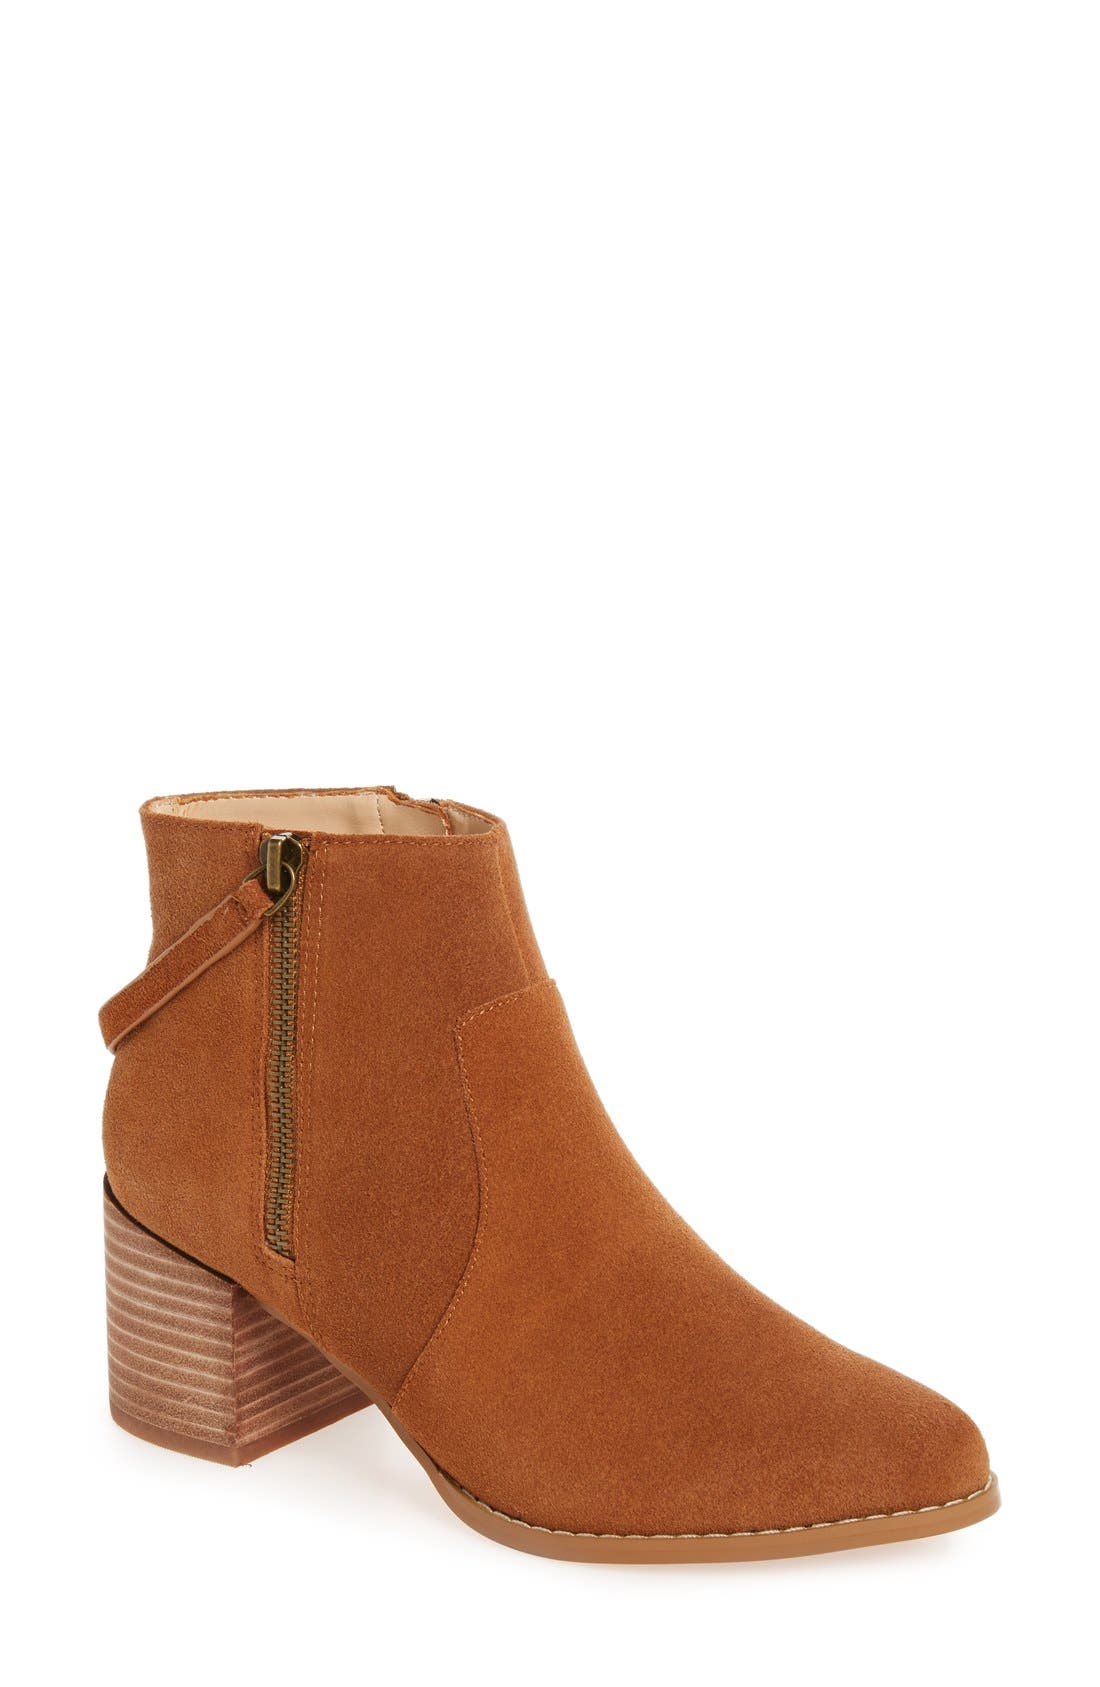 Alternate Image 1 Selected - Sole Society Everleigh Bootie (Women)